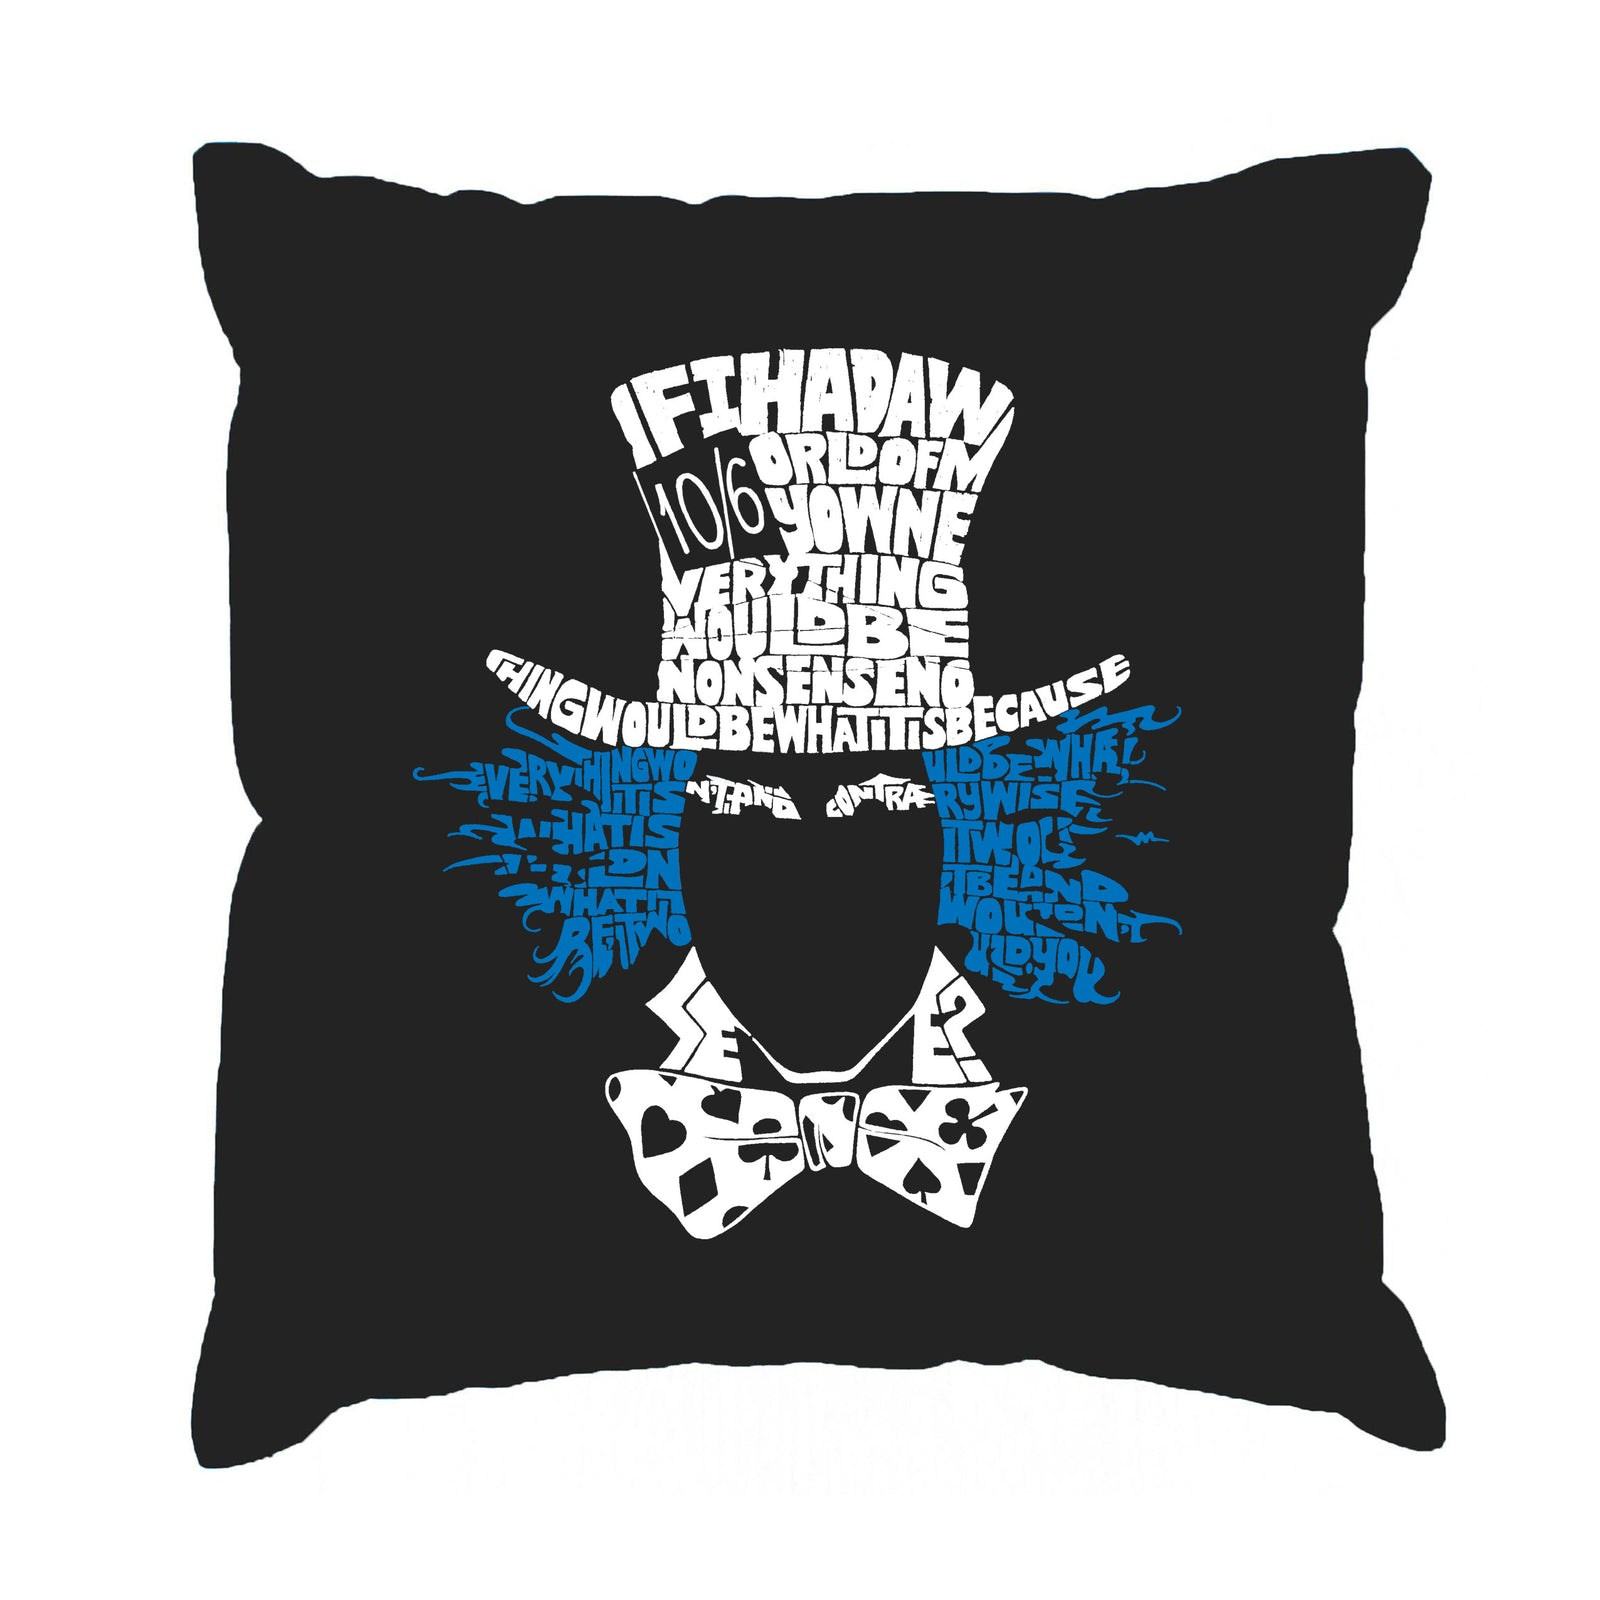 Throw Pillow Cover - The Mad Hatter